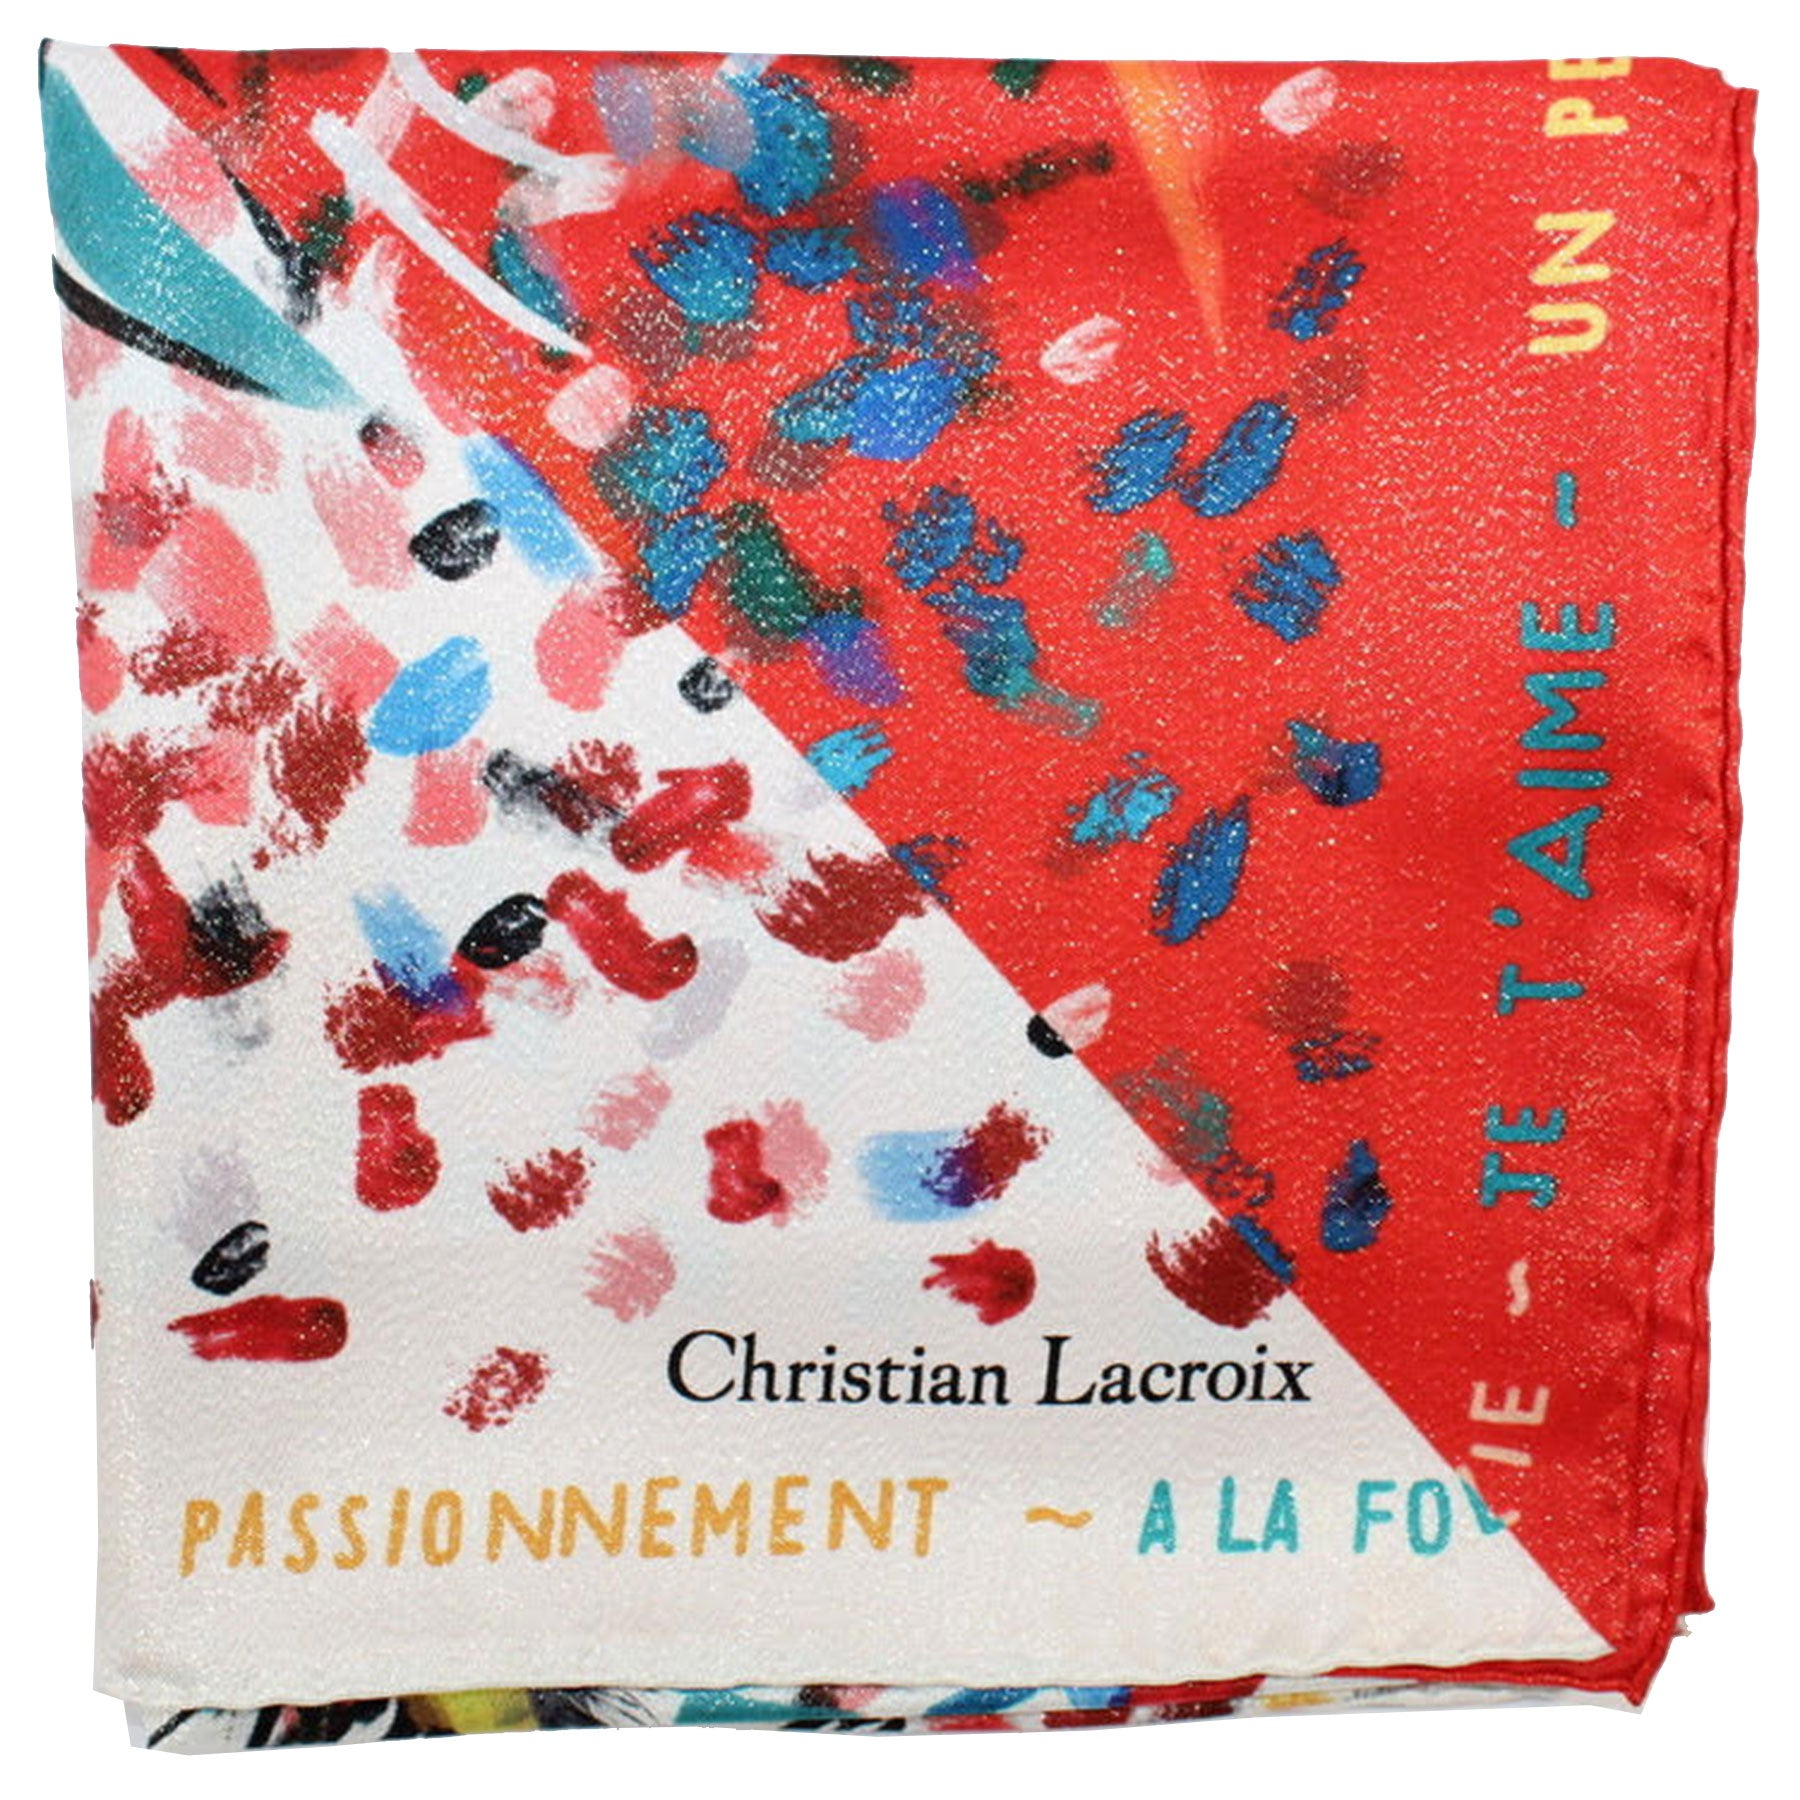 Christian Lacroix Scarf 20 Ans Design Red Turquoise - Large Twill Silk Square Scarf